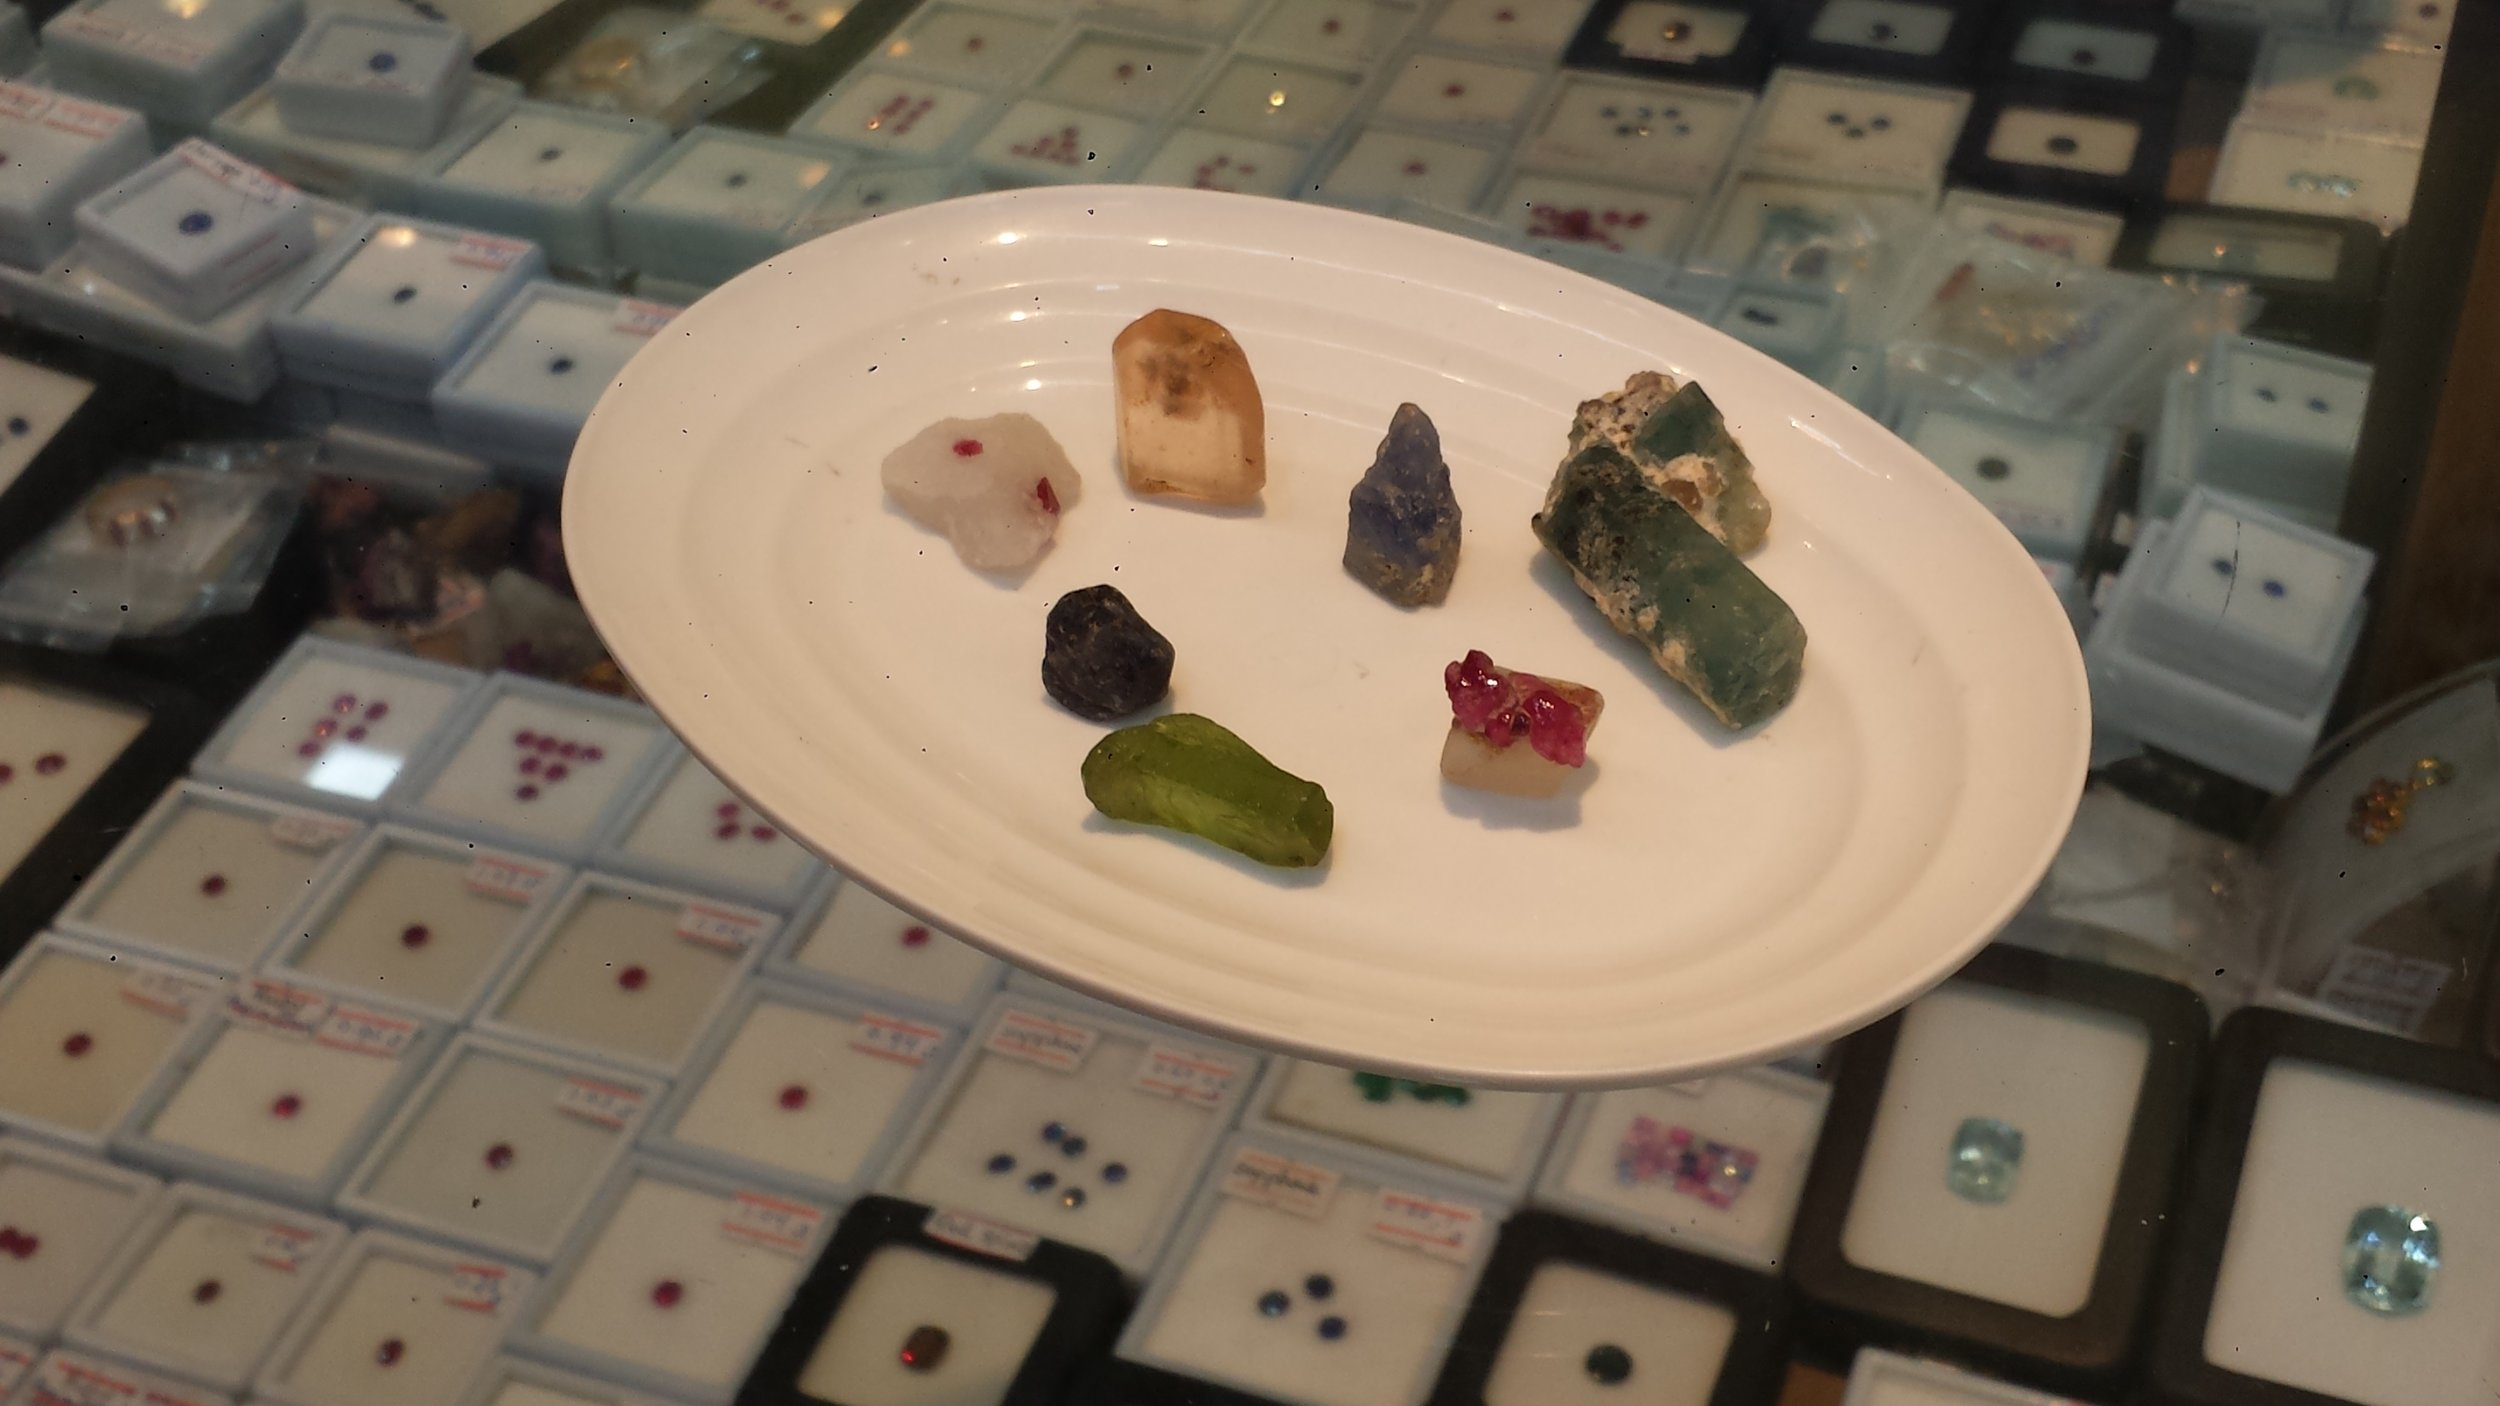 Left to right: spinal, topaz, sapphire, peridot,sapphire, aquamarine, and ruby